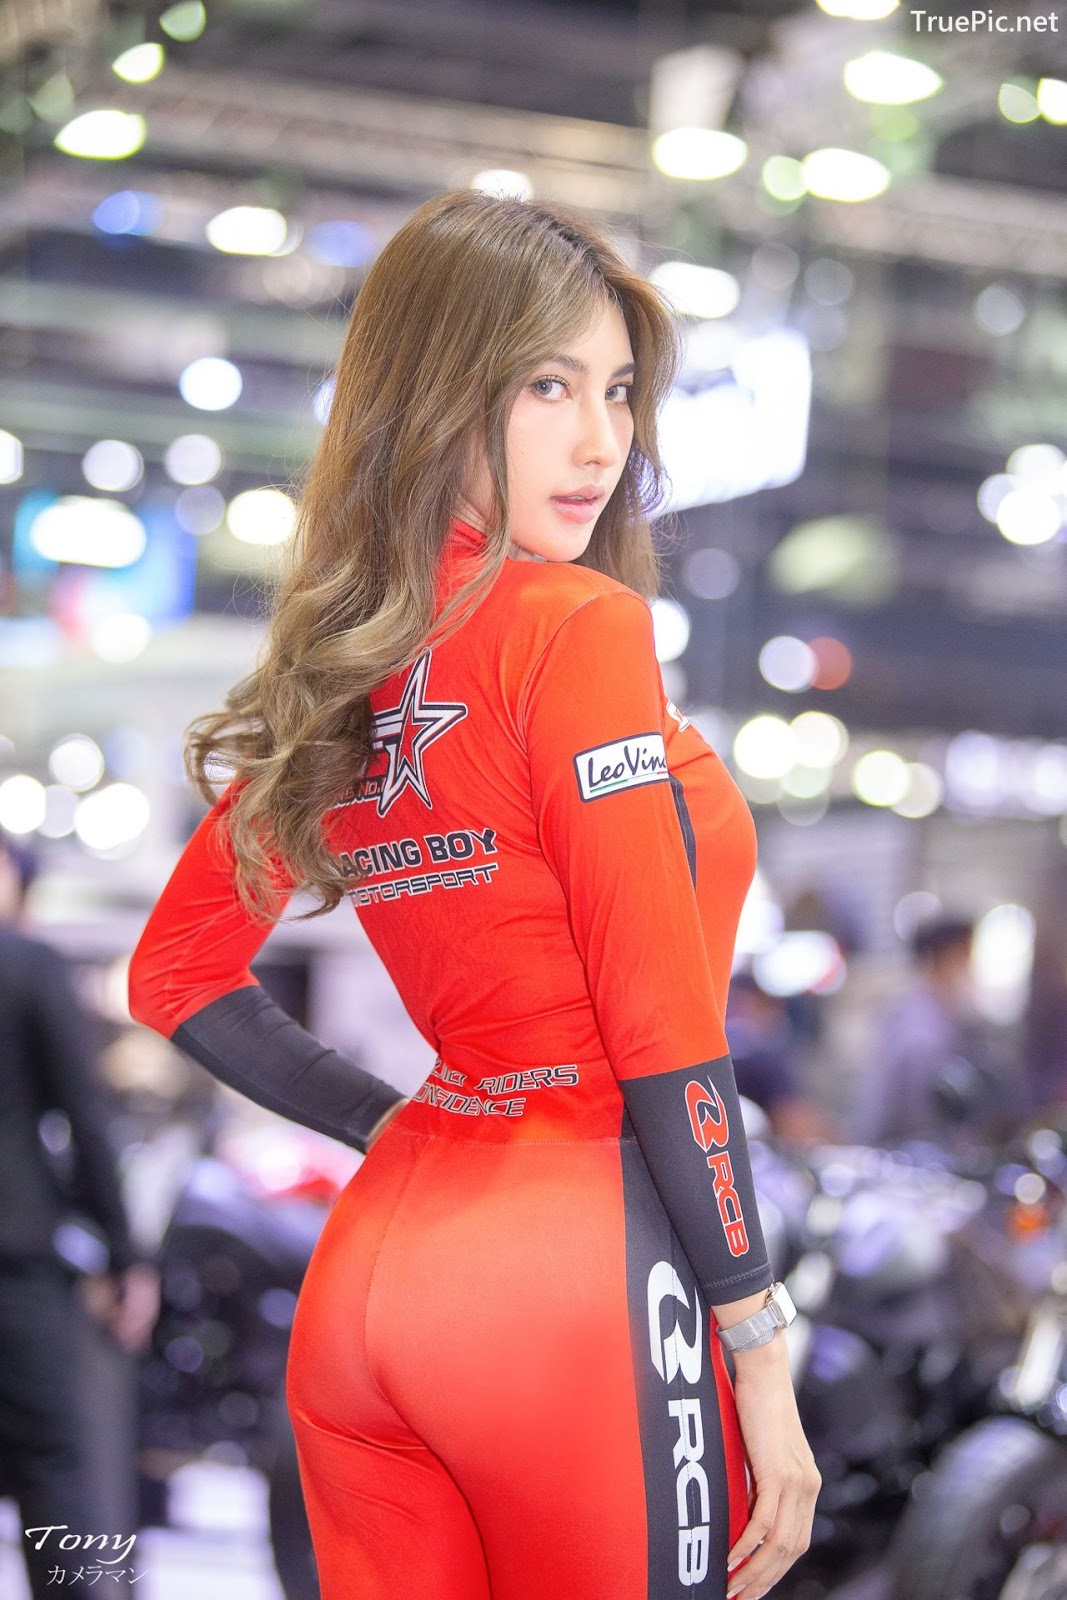 Image-Thailand-Hot-Model-Thai-Racing-Girl-At-Motor-Expo-2019-TruePic.net- Picture-6